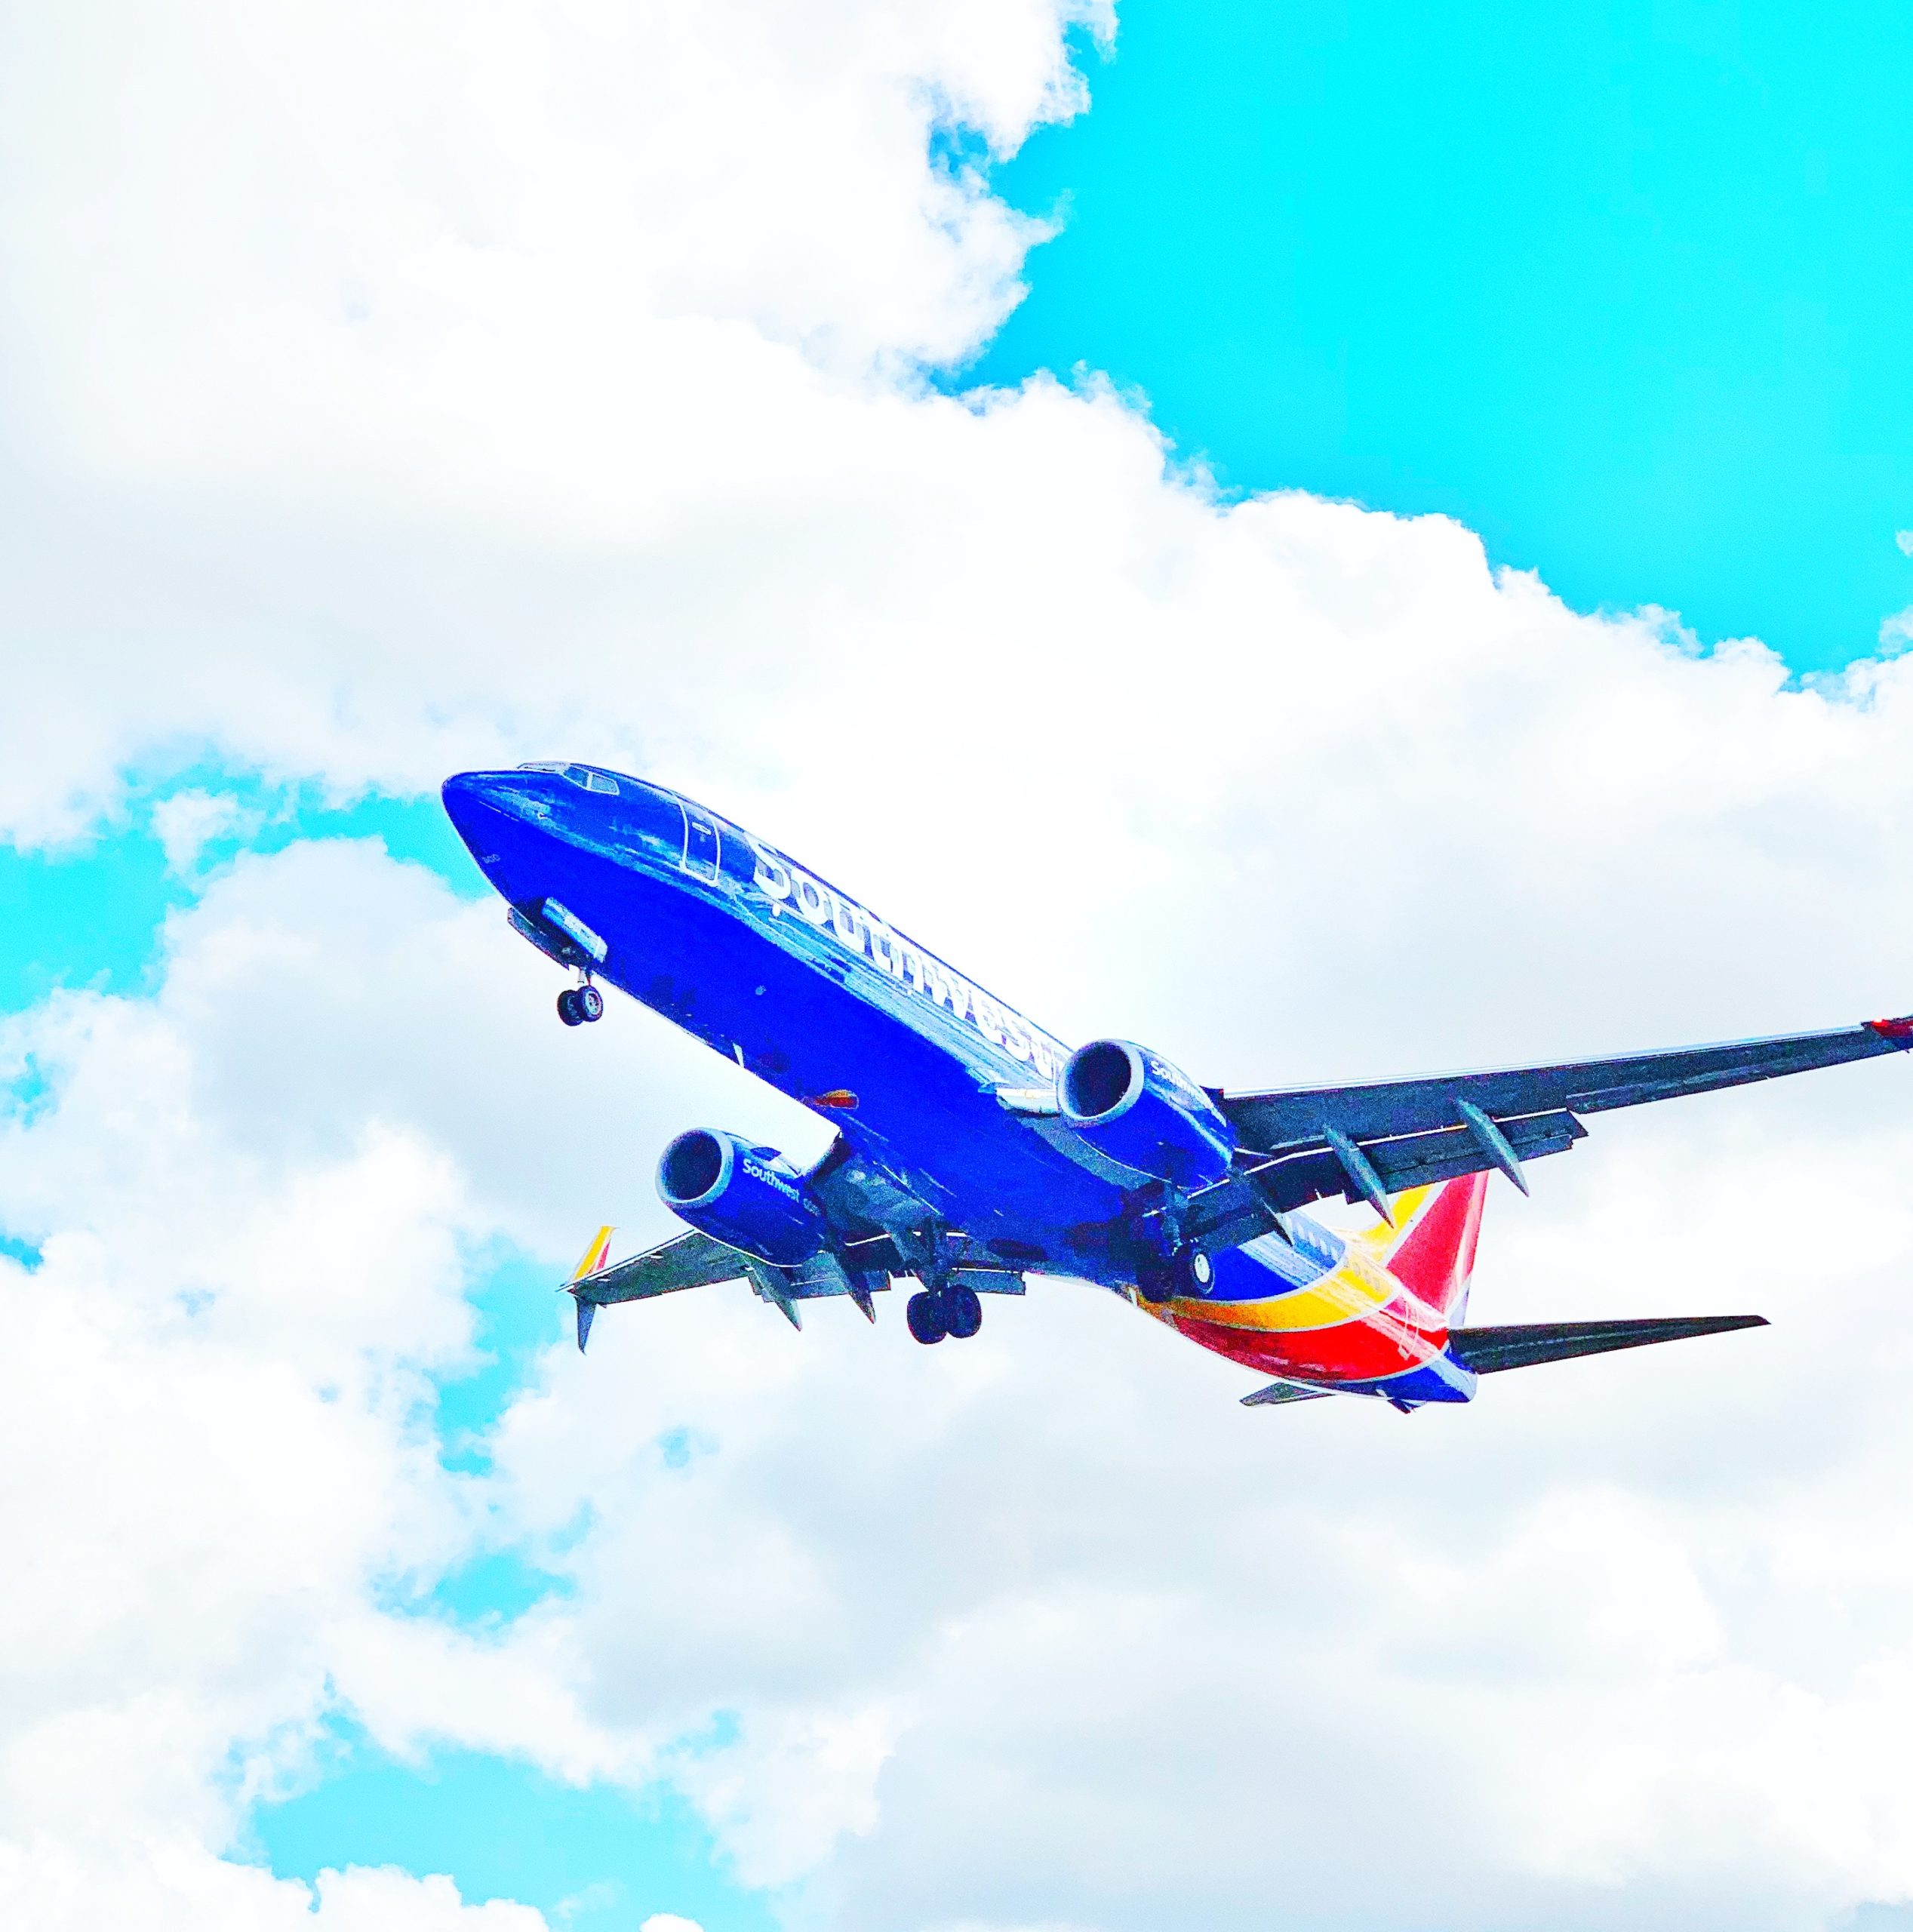 Check Your Southwest Account For A Gift!